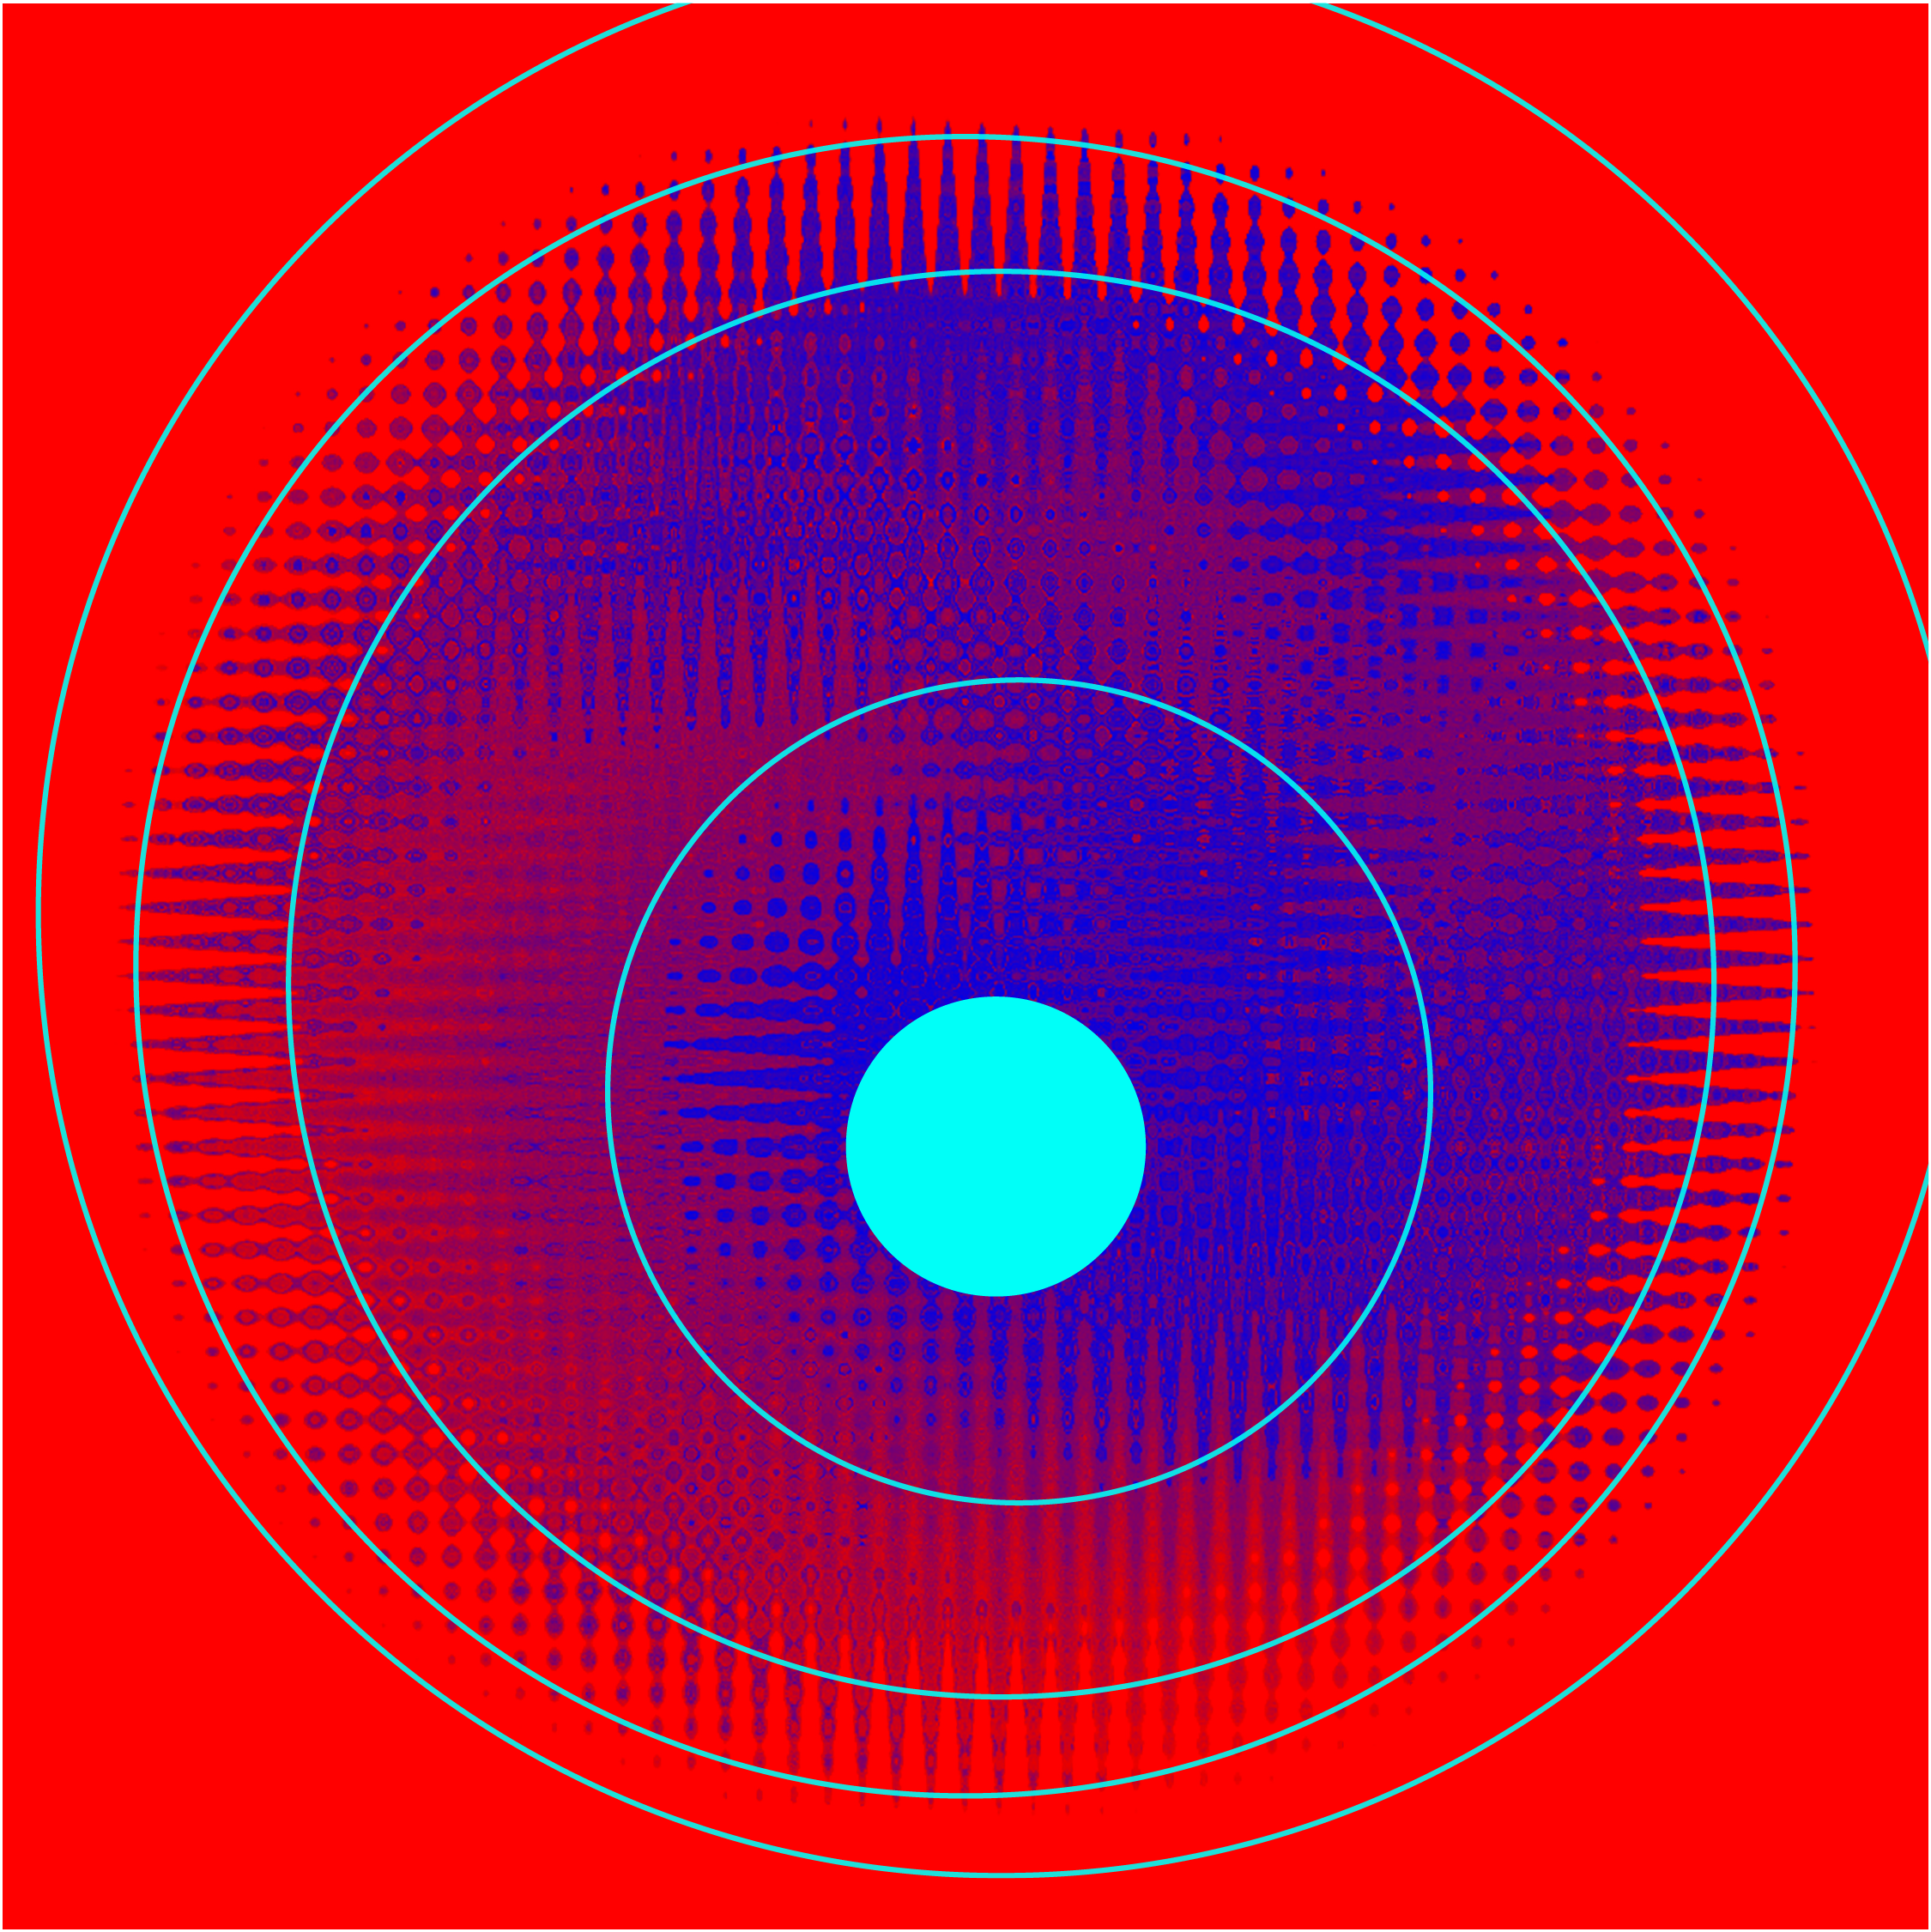 Abstract image with a geometric blue circle pattern on a red background with a bright cyan blue dot in the middle, and cyan blue rings spiraling out from the dot.